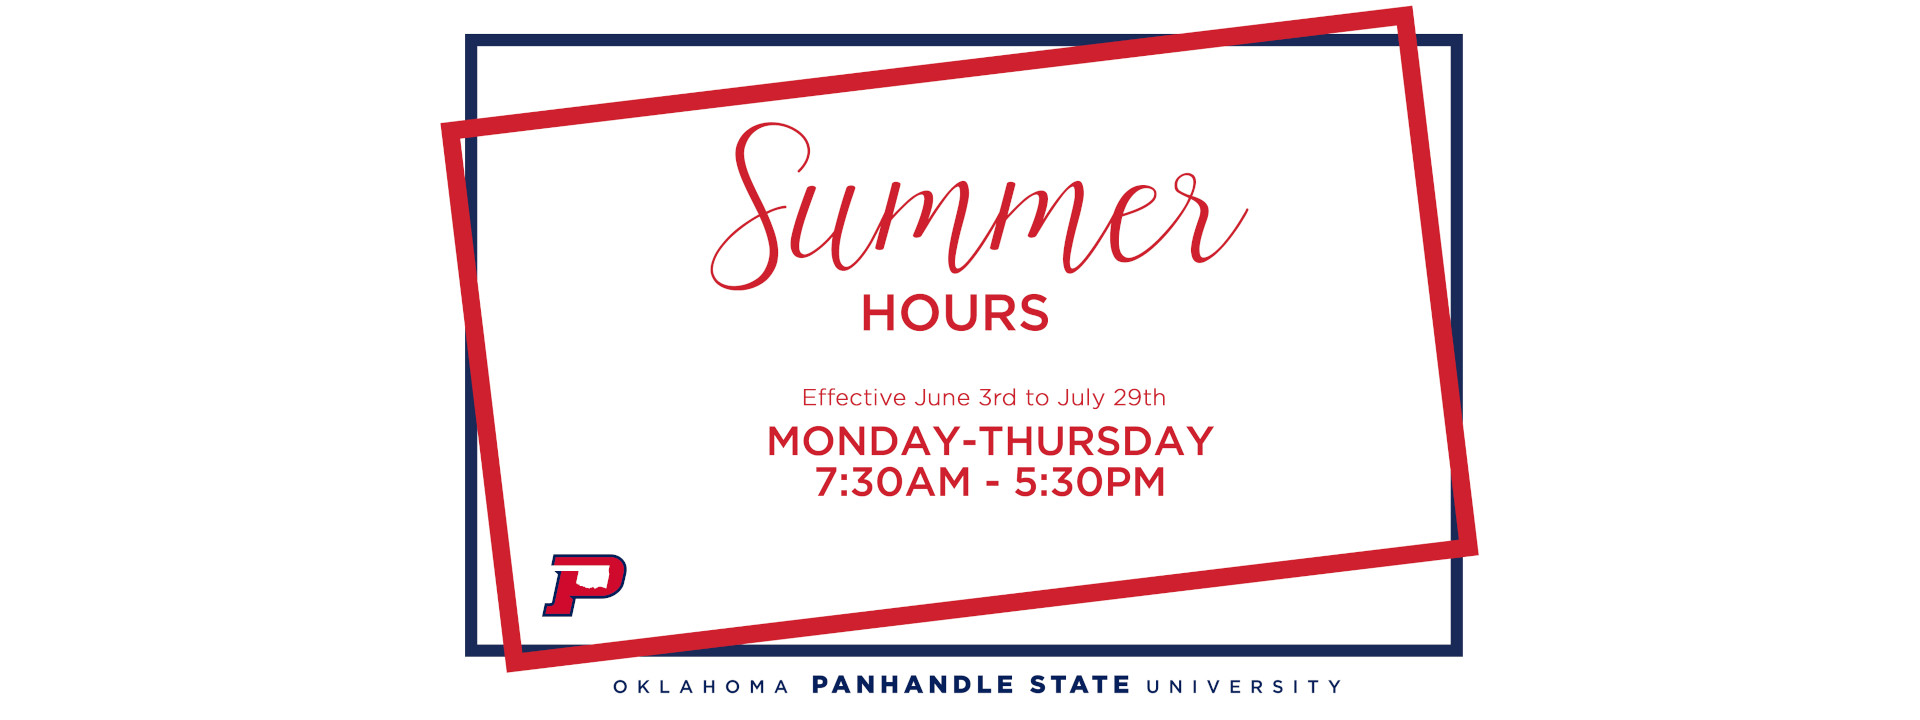 Summer Hours Effective June 3rd to July 29th - 7:30AM - 5:30PM